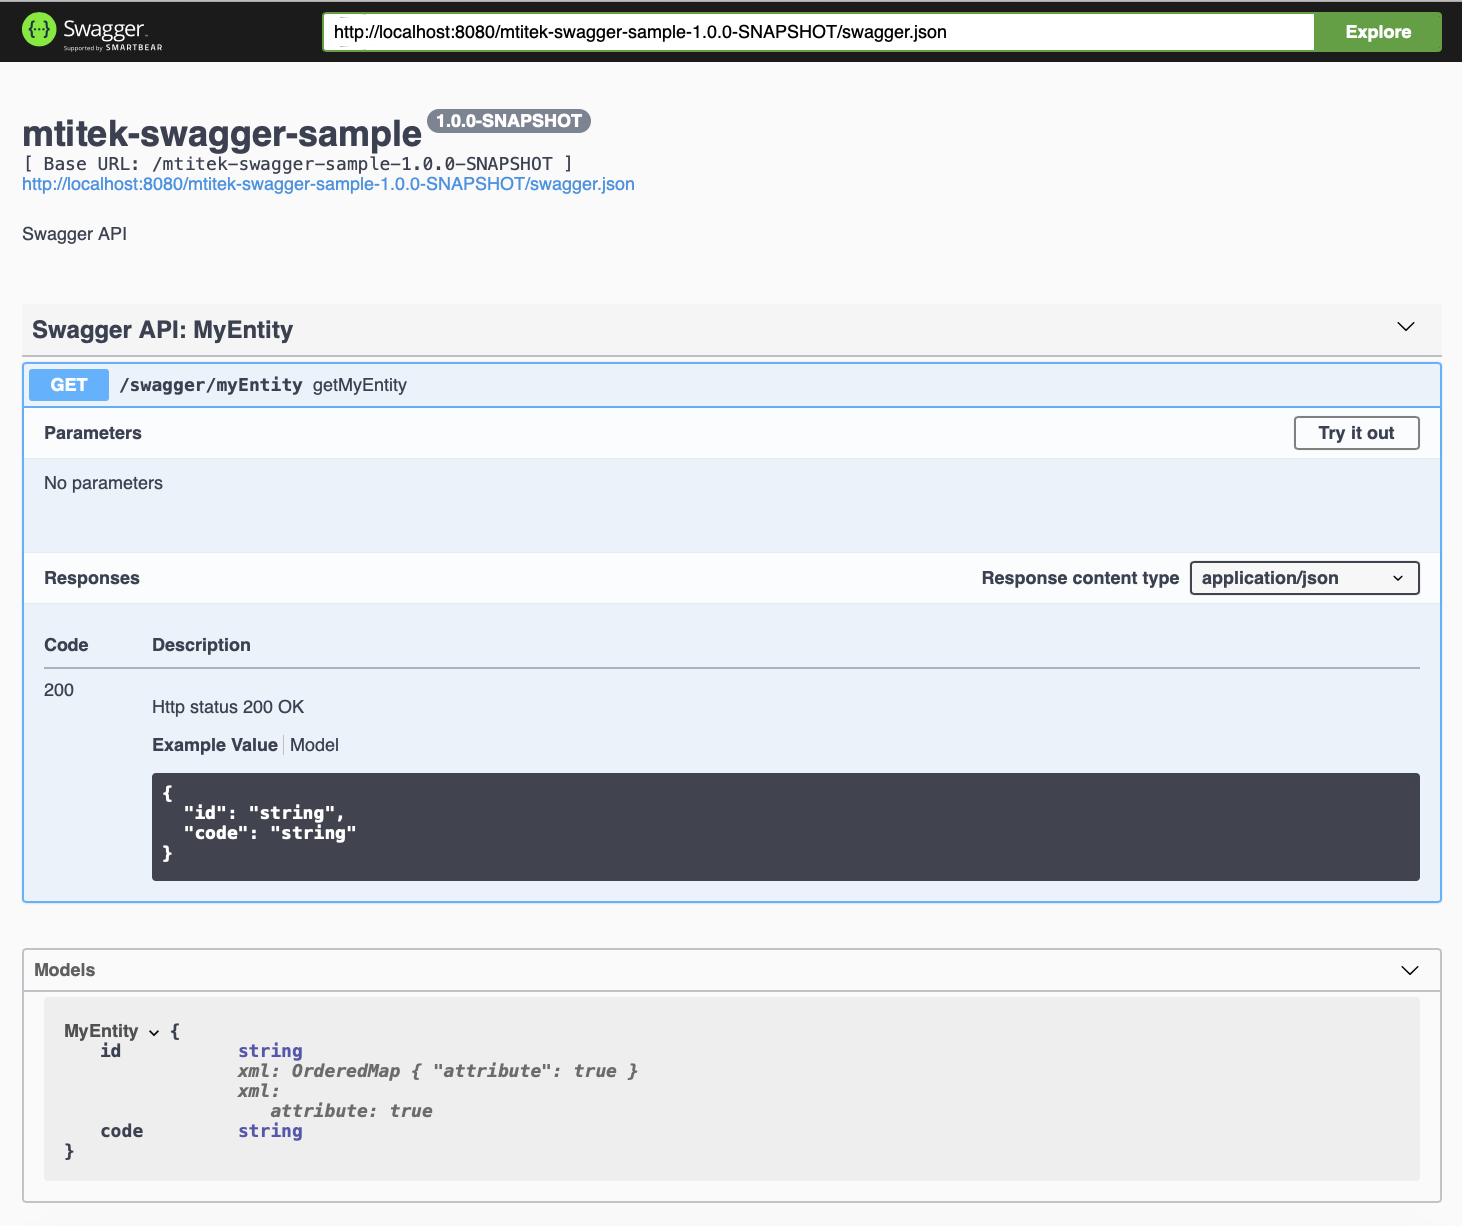 Swagger UI: Sample Application (Swagger, Jersey, Spring